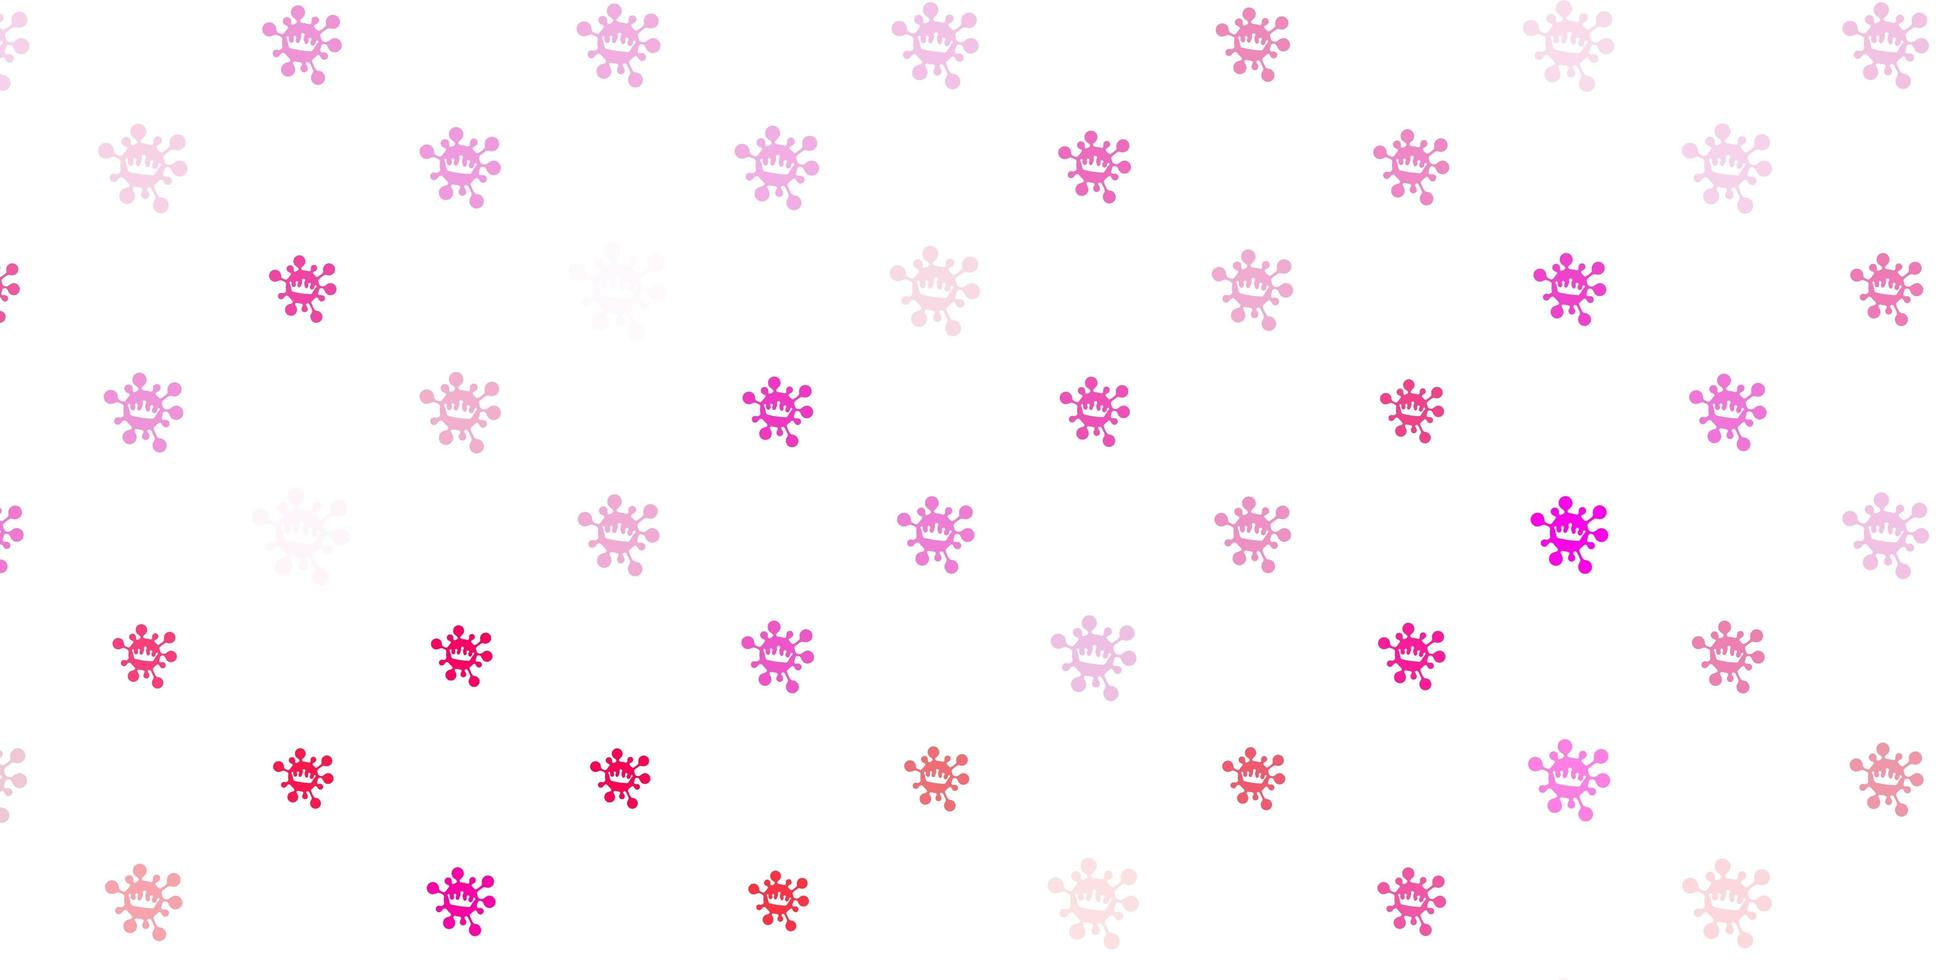 Light pink vector texture with disease symbols